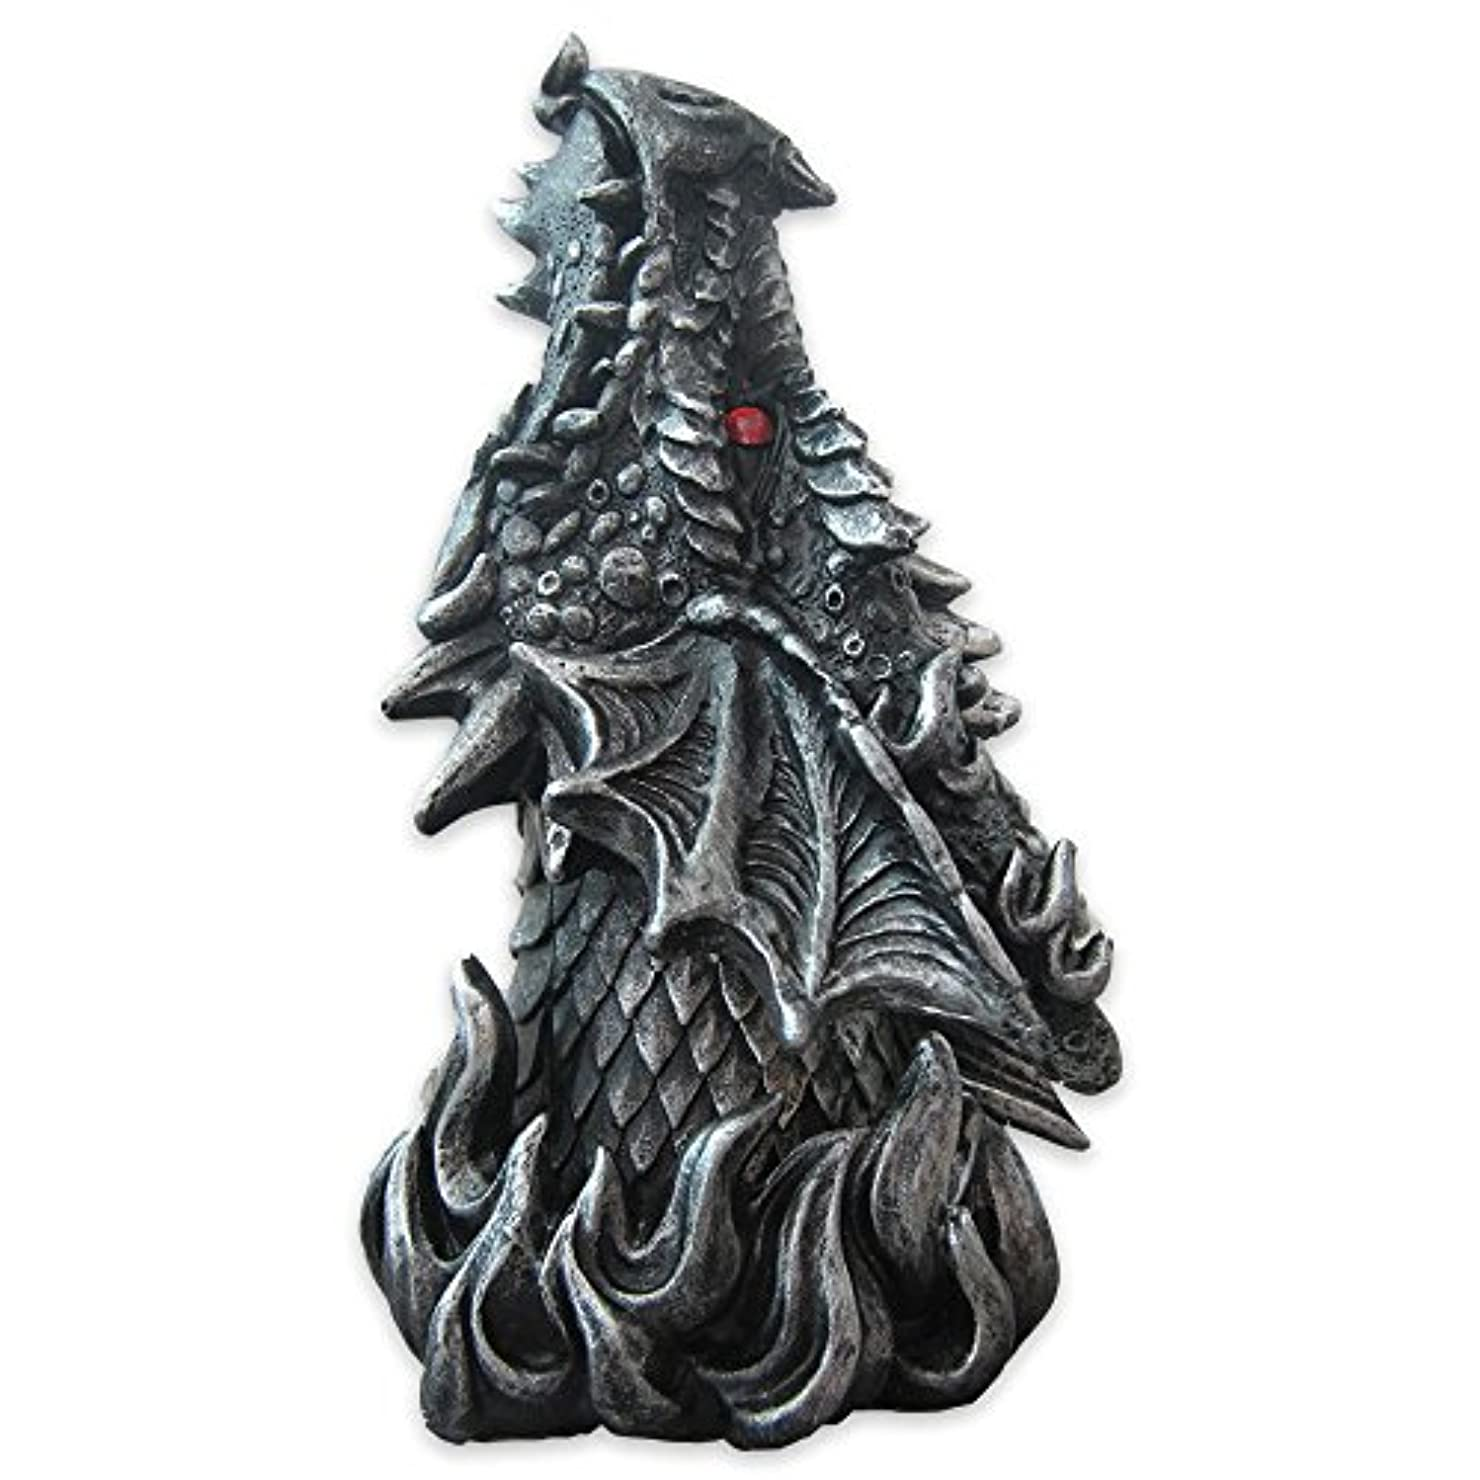 レーザ他の場所弾性Dragon Figure Cone Incense Burner Fiery Eyes - Gothic Smoke Breathing Decor